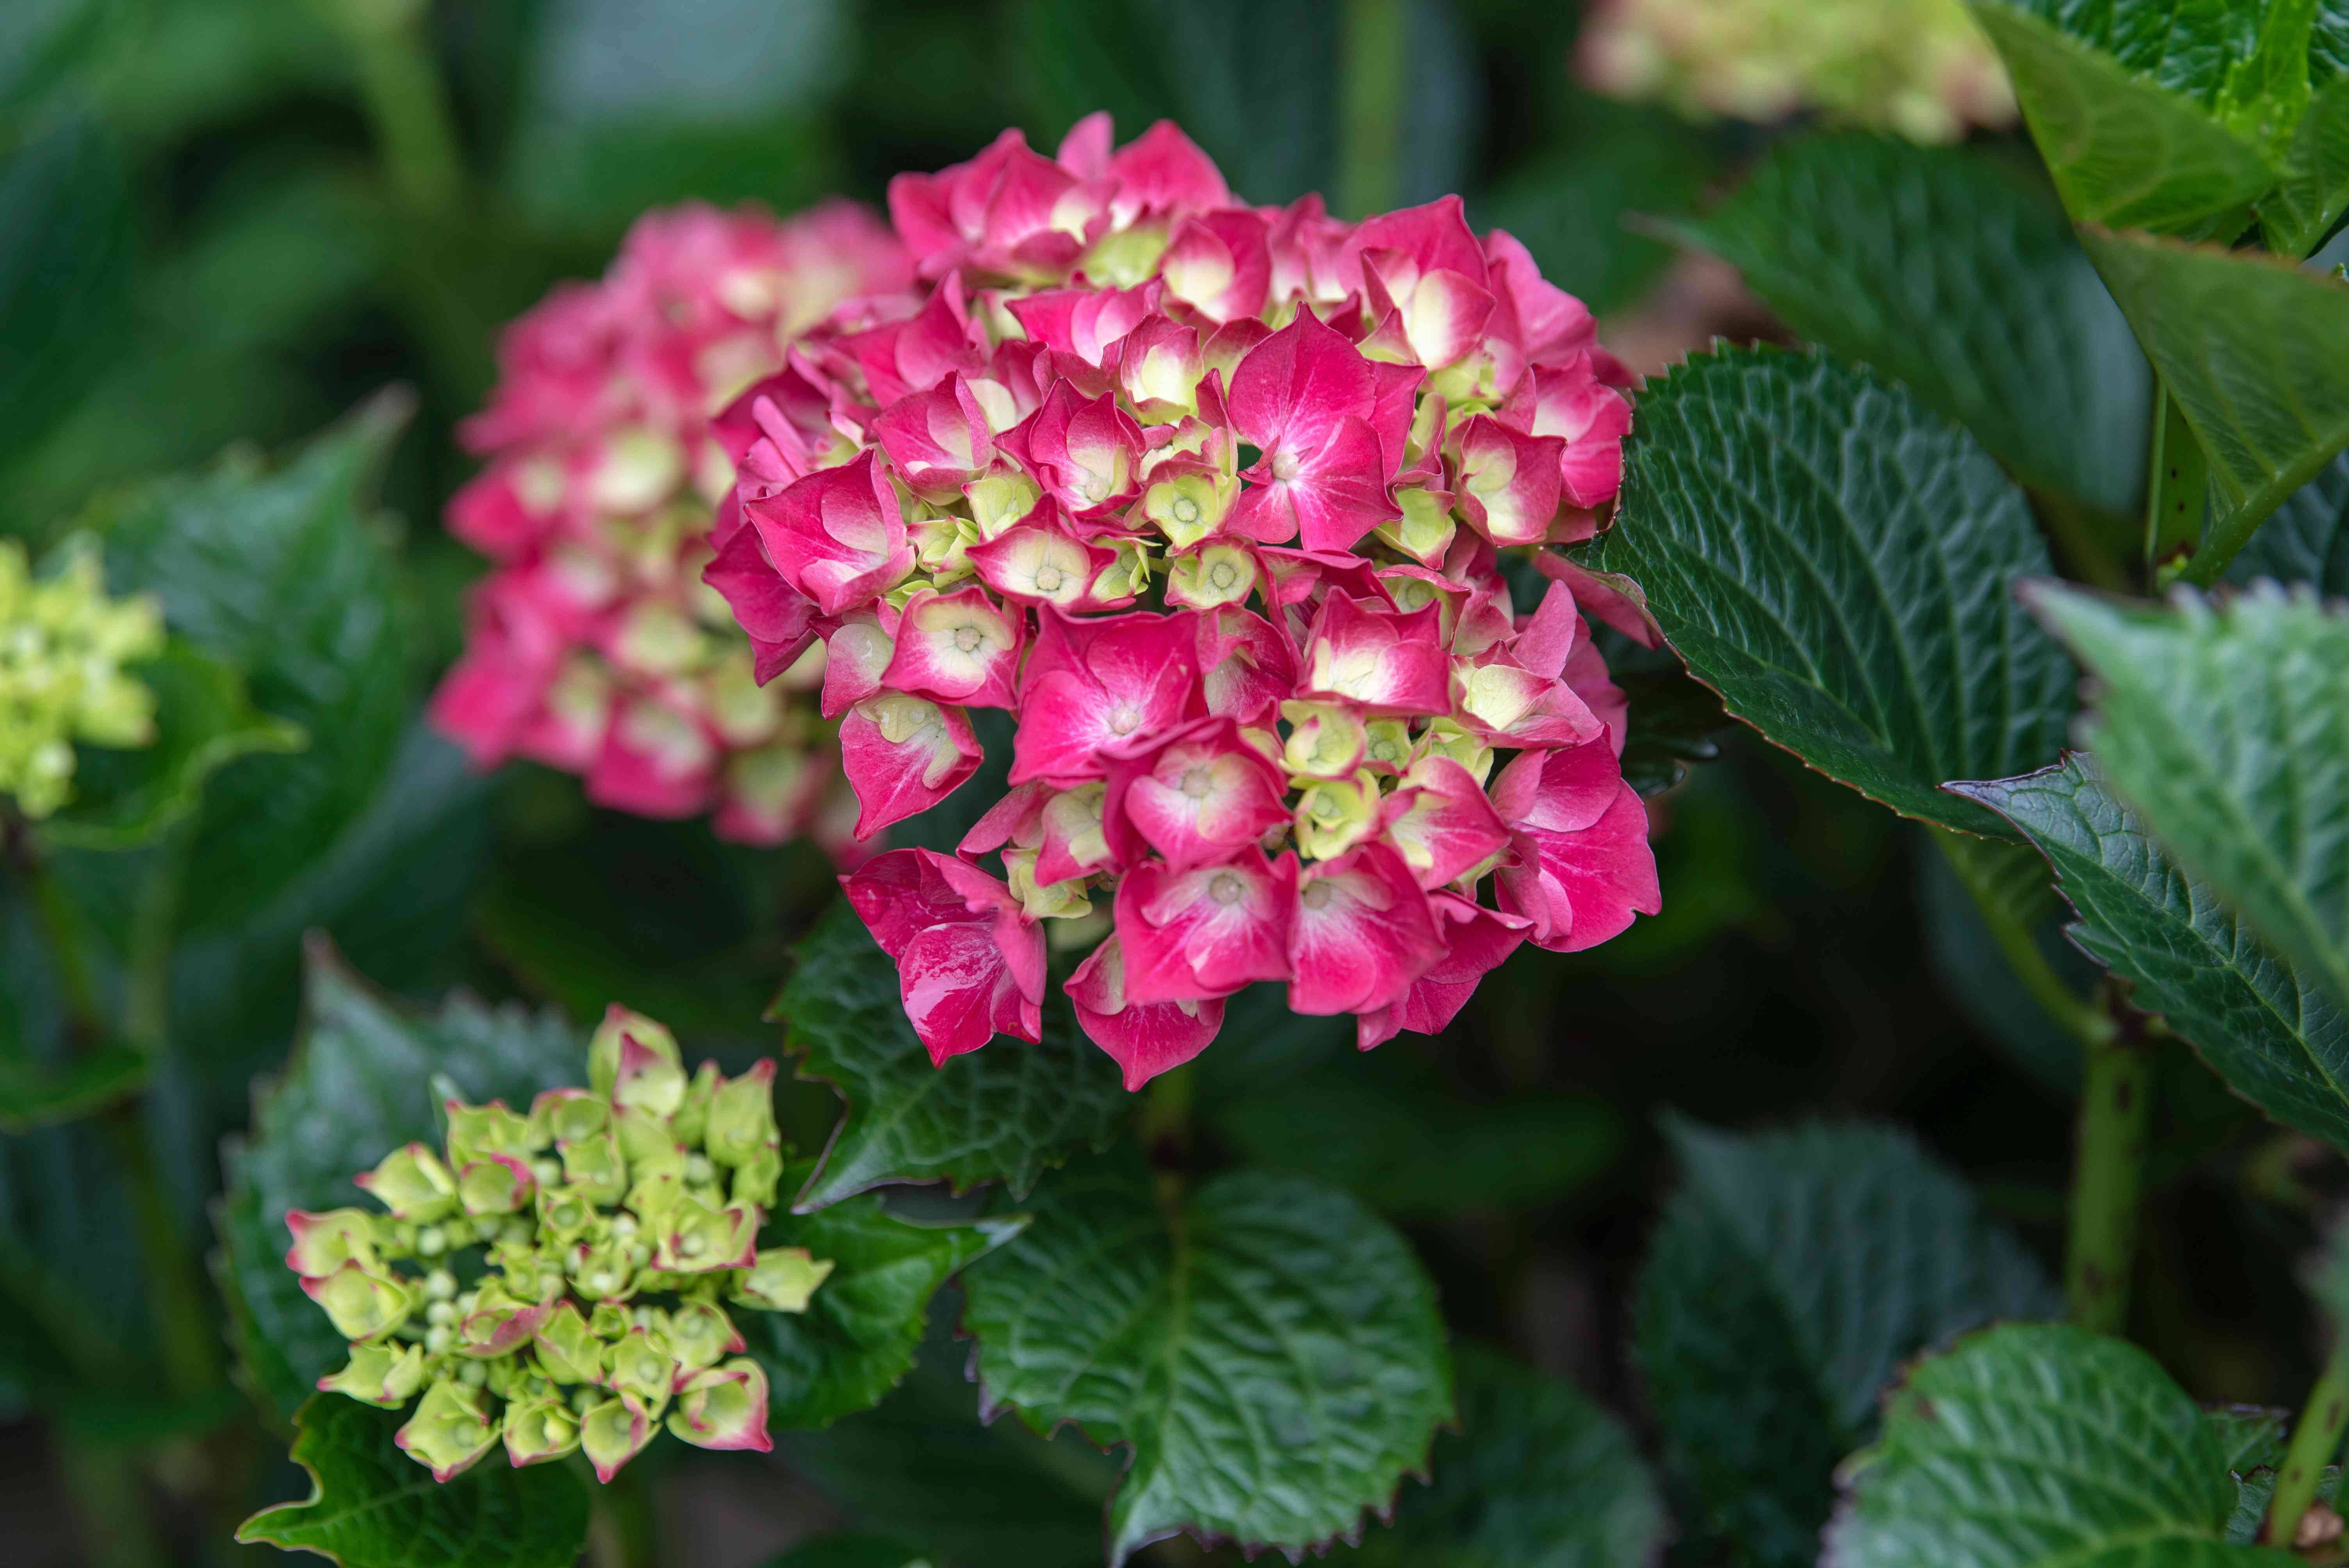 Mophead hydrangea shrub with ribbed leaves surrounding cluster of pink and light green flowers closeup